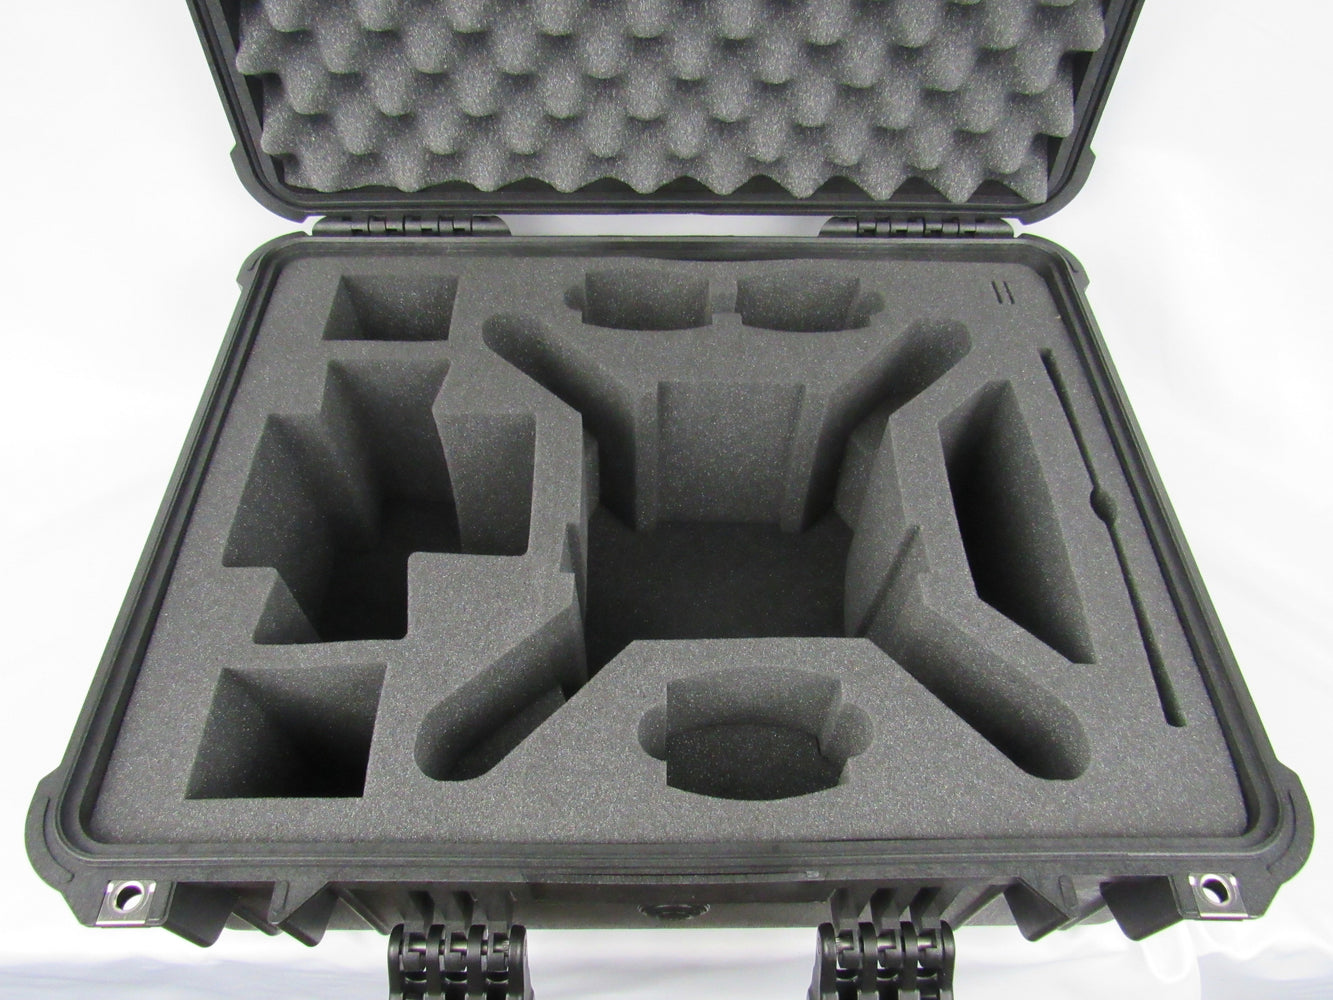 Pelican Case 1610 with Foam Insert for Phantom 3 Drone (Propellers On)